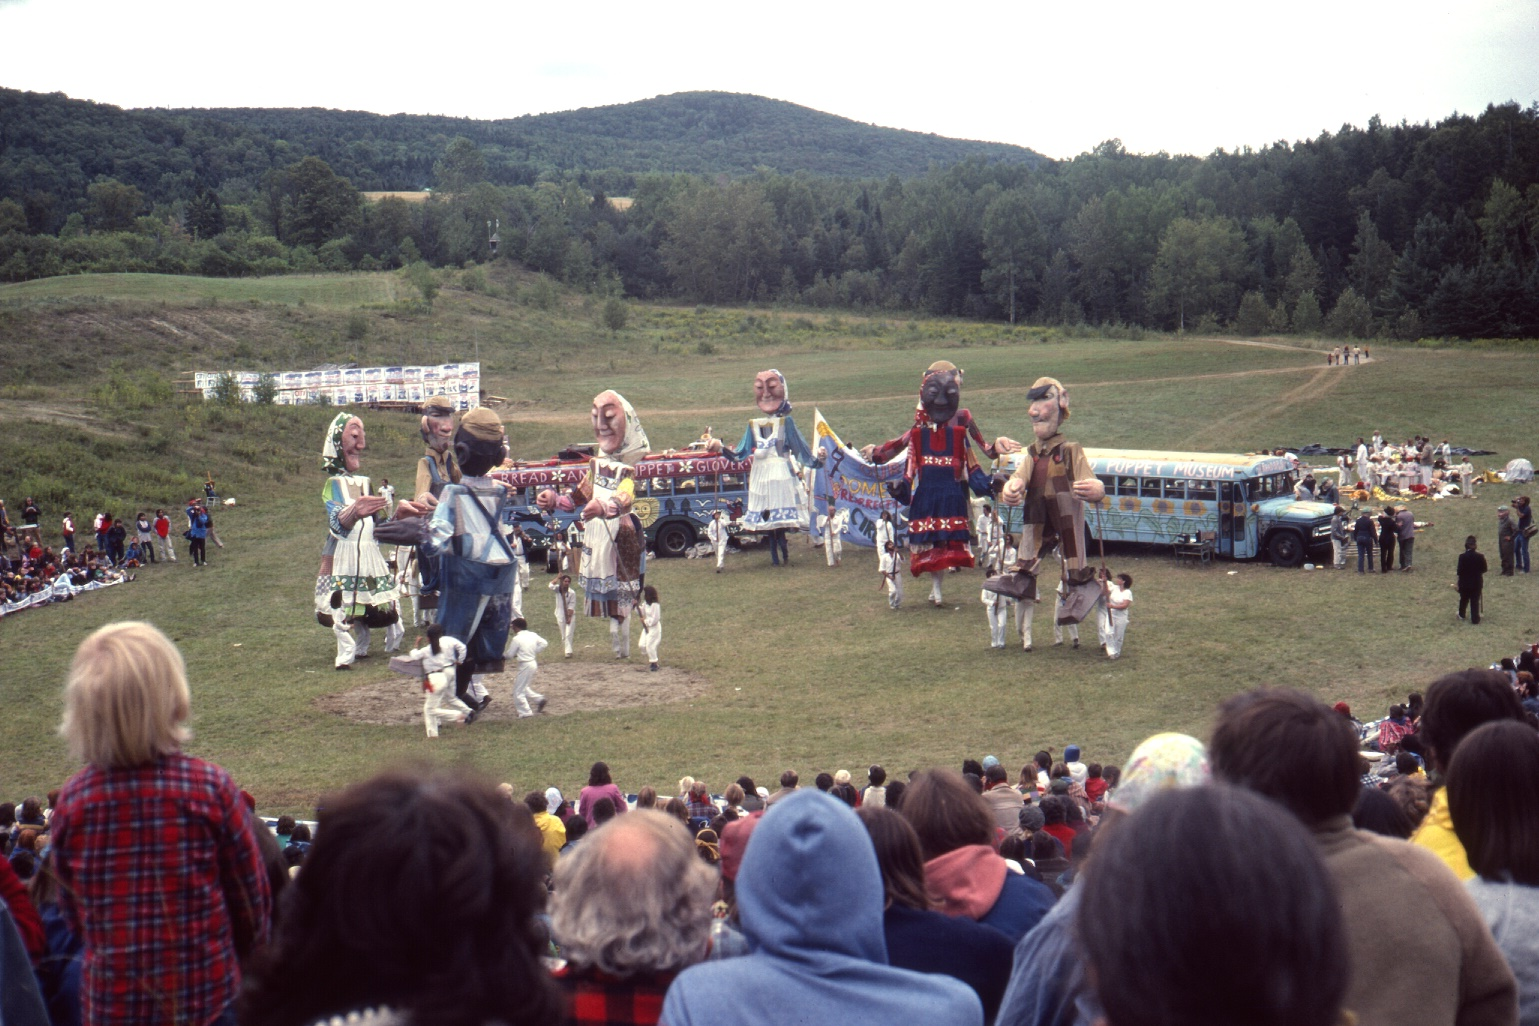 Performance of the Bread and Puppet Theater.